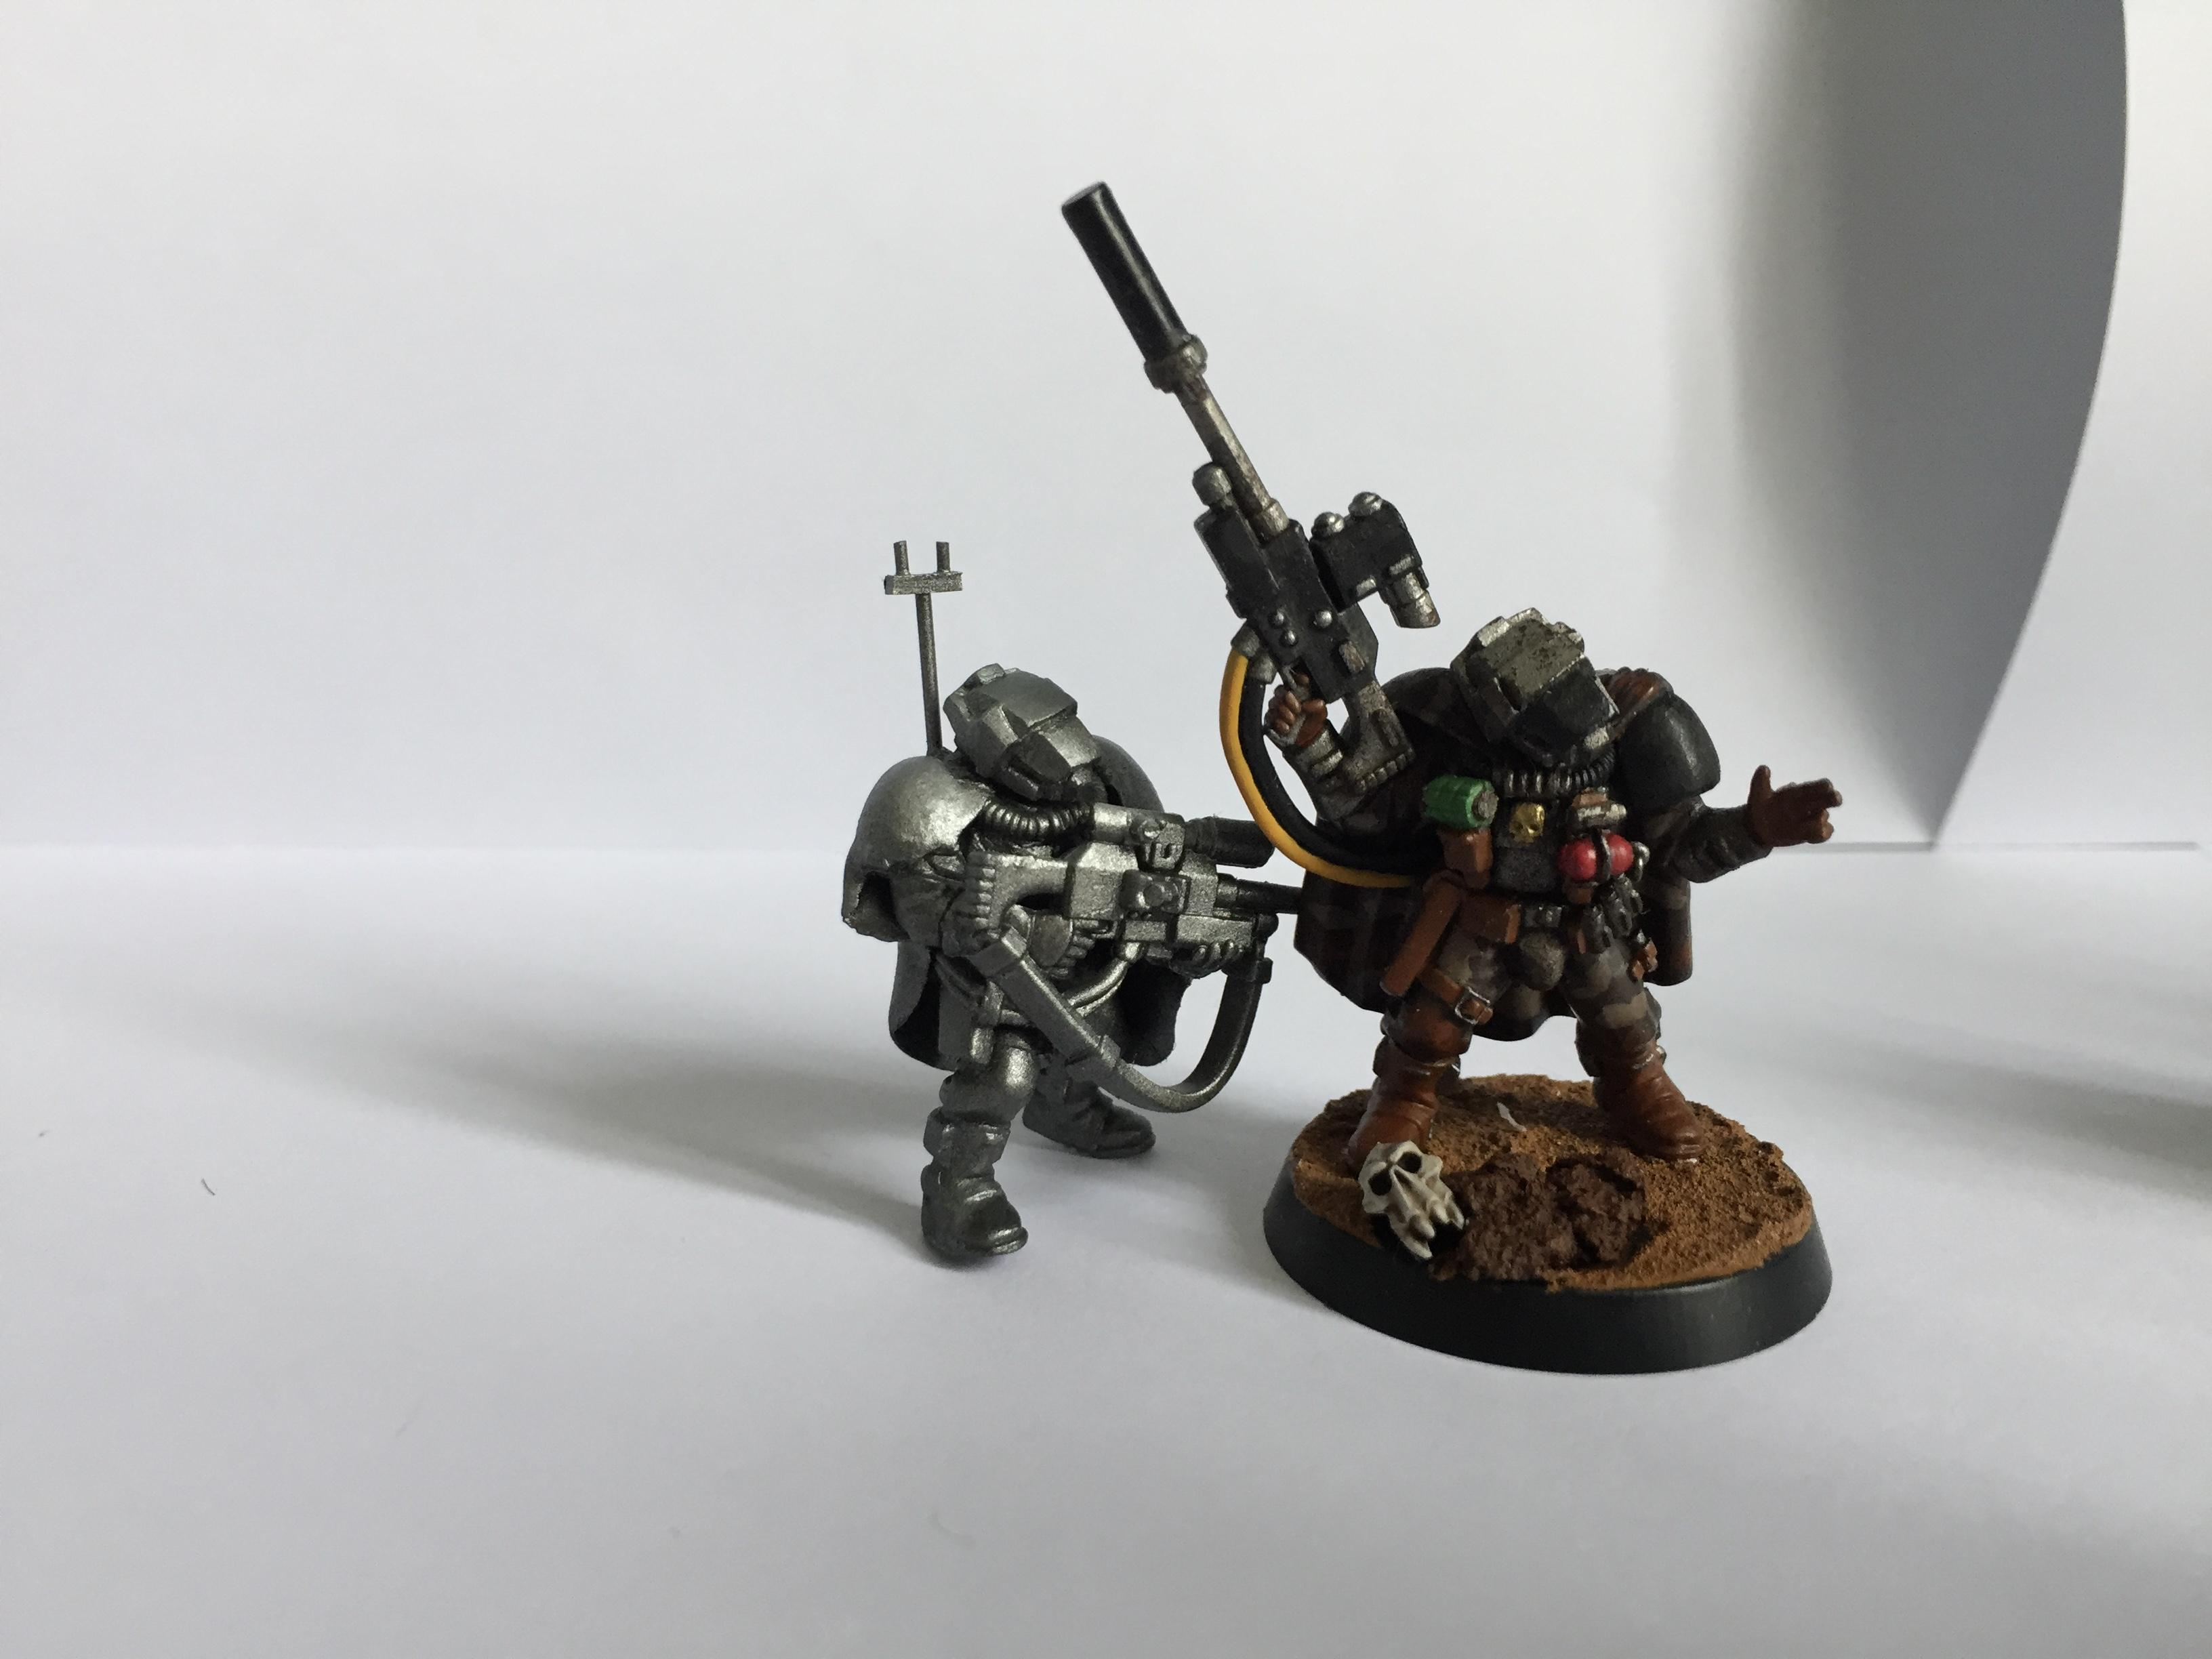 Iron Warriors, Pre Heresy, Preheresy, Reconnaissance Marines, Scout Armour, Sniper Rifles